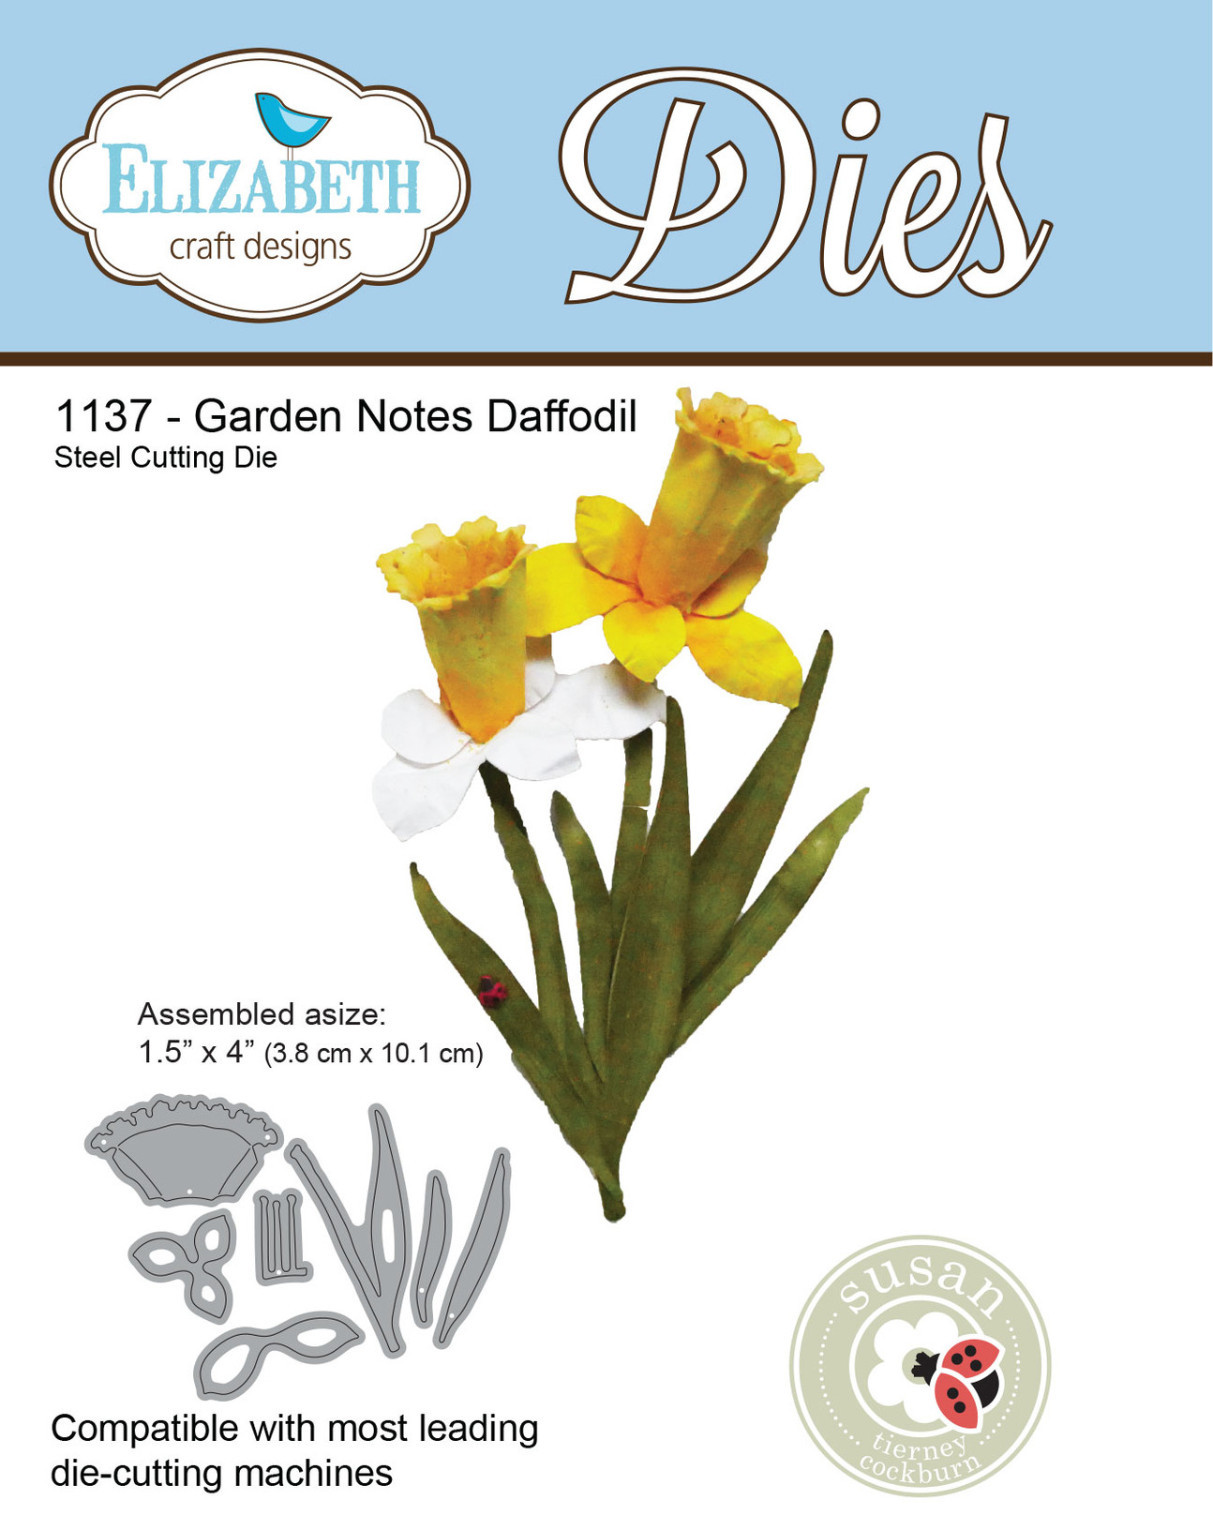 Elizabeth Crafts - new dies, stencils and stamps